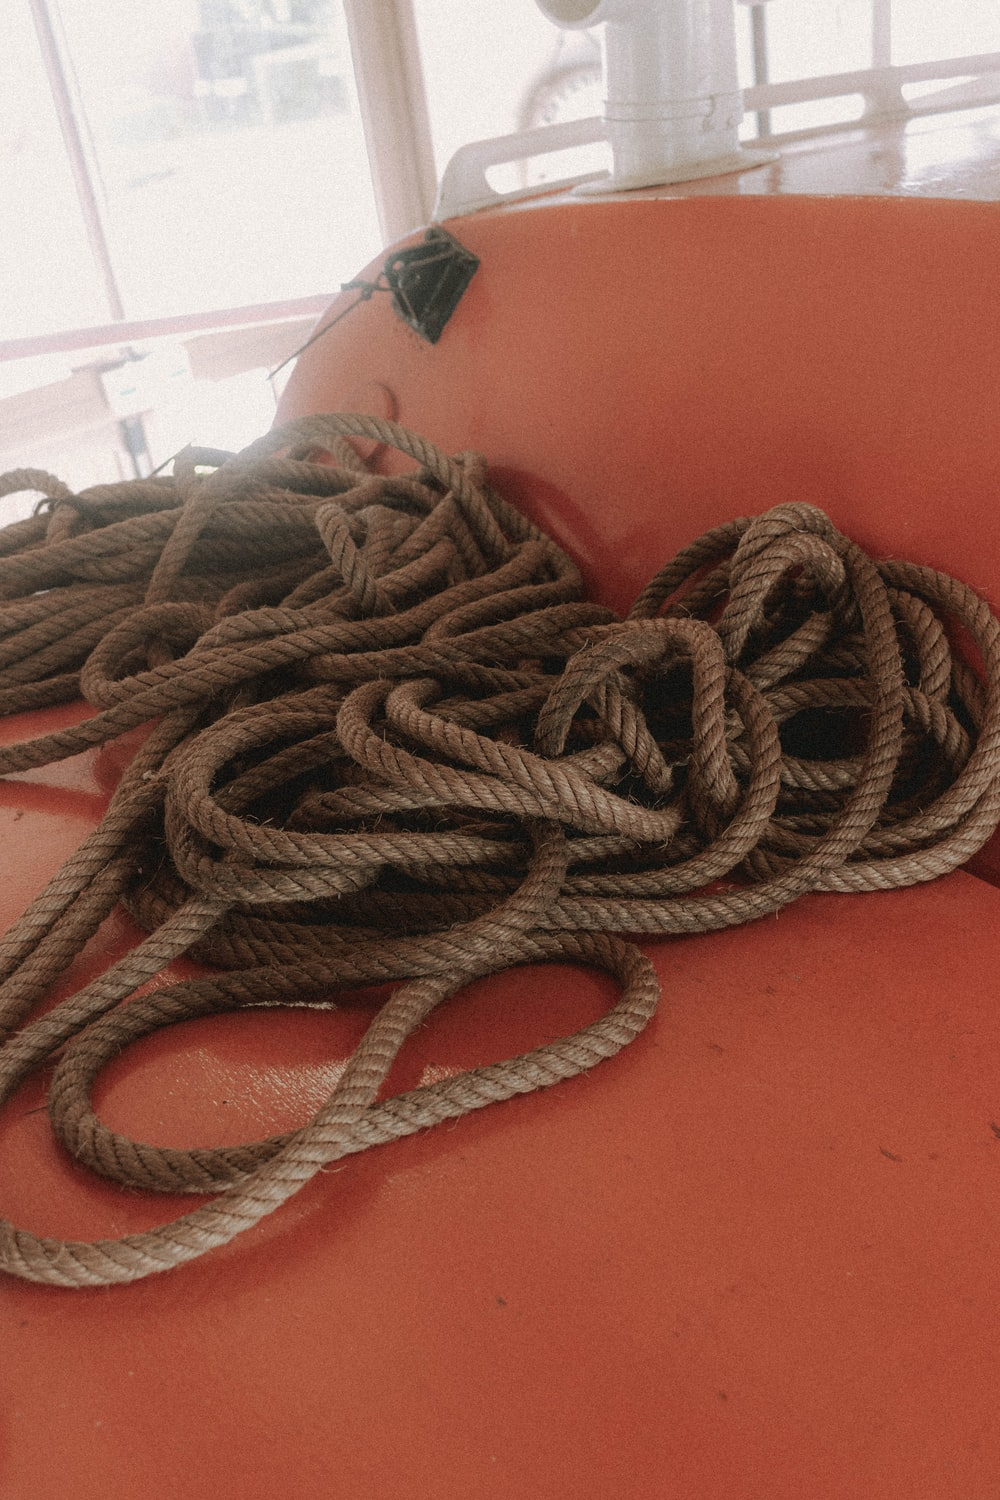 brown rope on red table